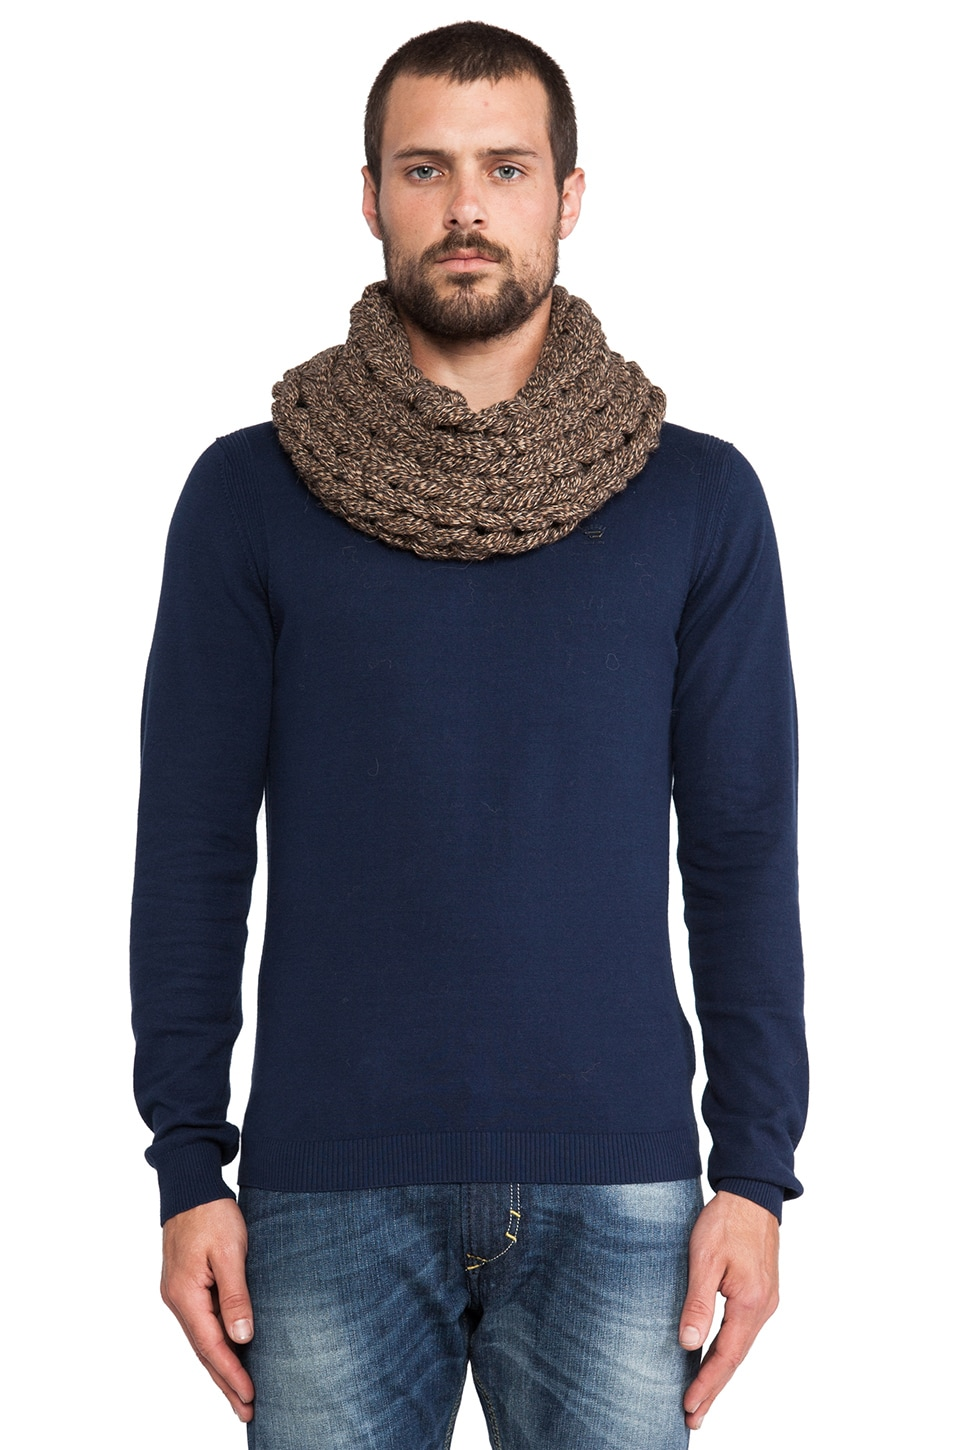 DE NADA Large Knit Cowl in Brown Mix